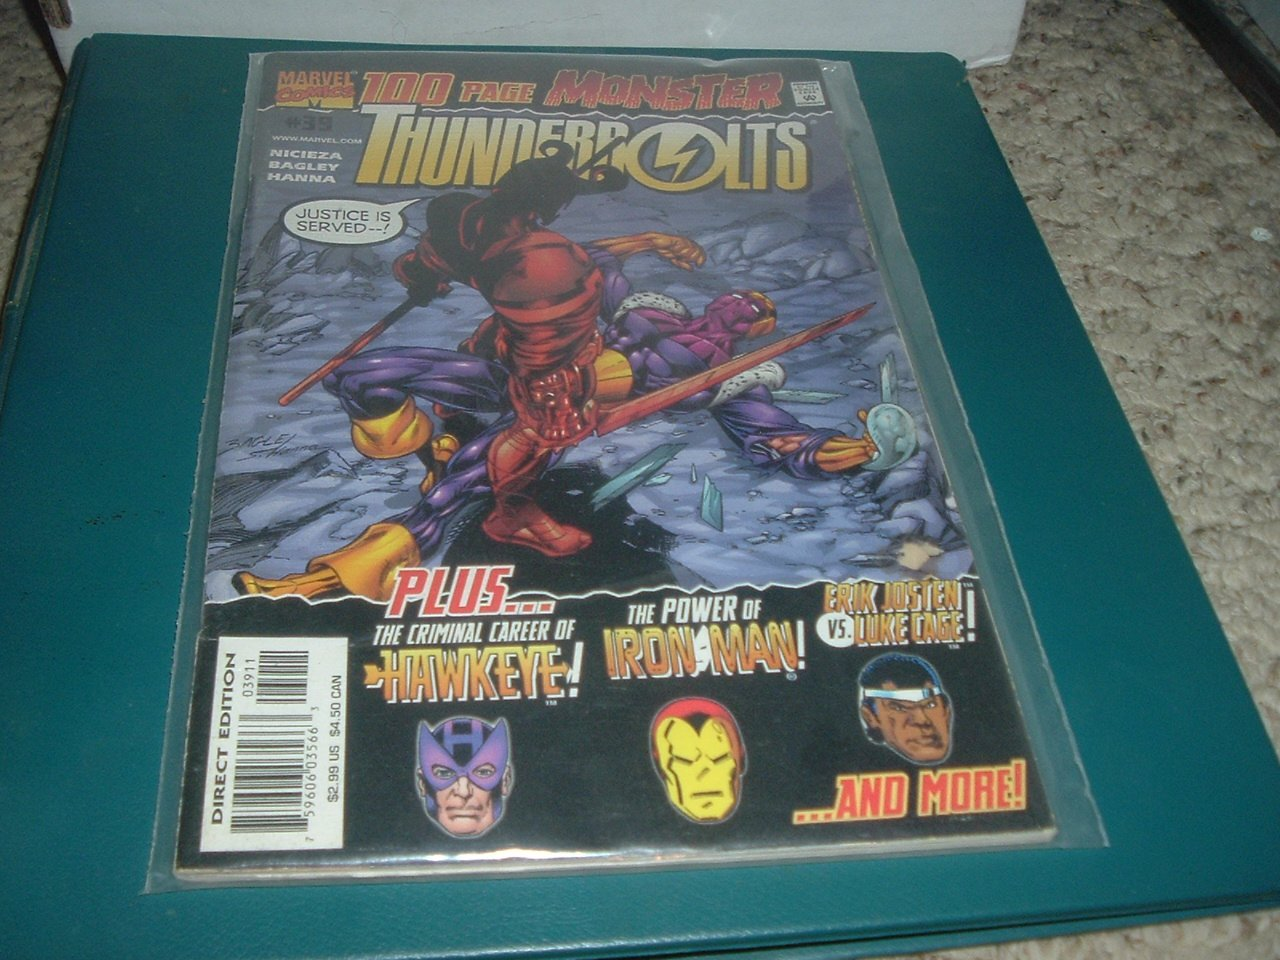 Thunderbolts #39 100-Page Monster sized special (Marvel Comics 2000) Nicieza, Bagley, comic for sale